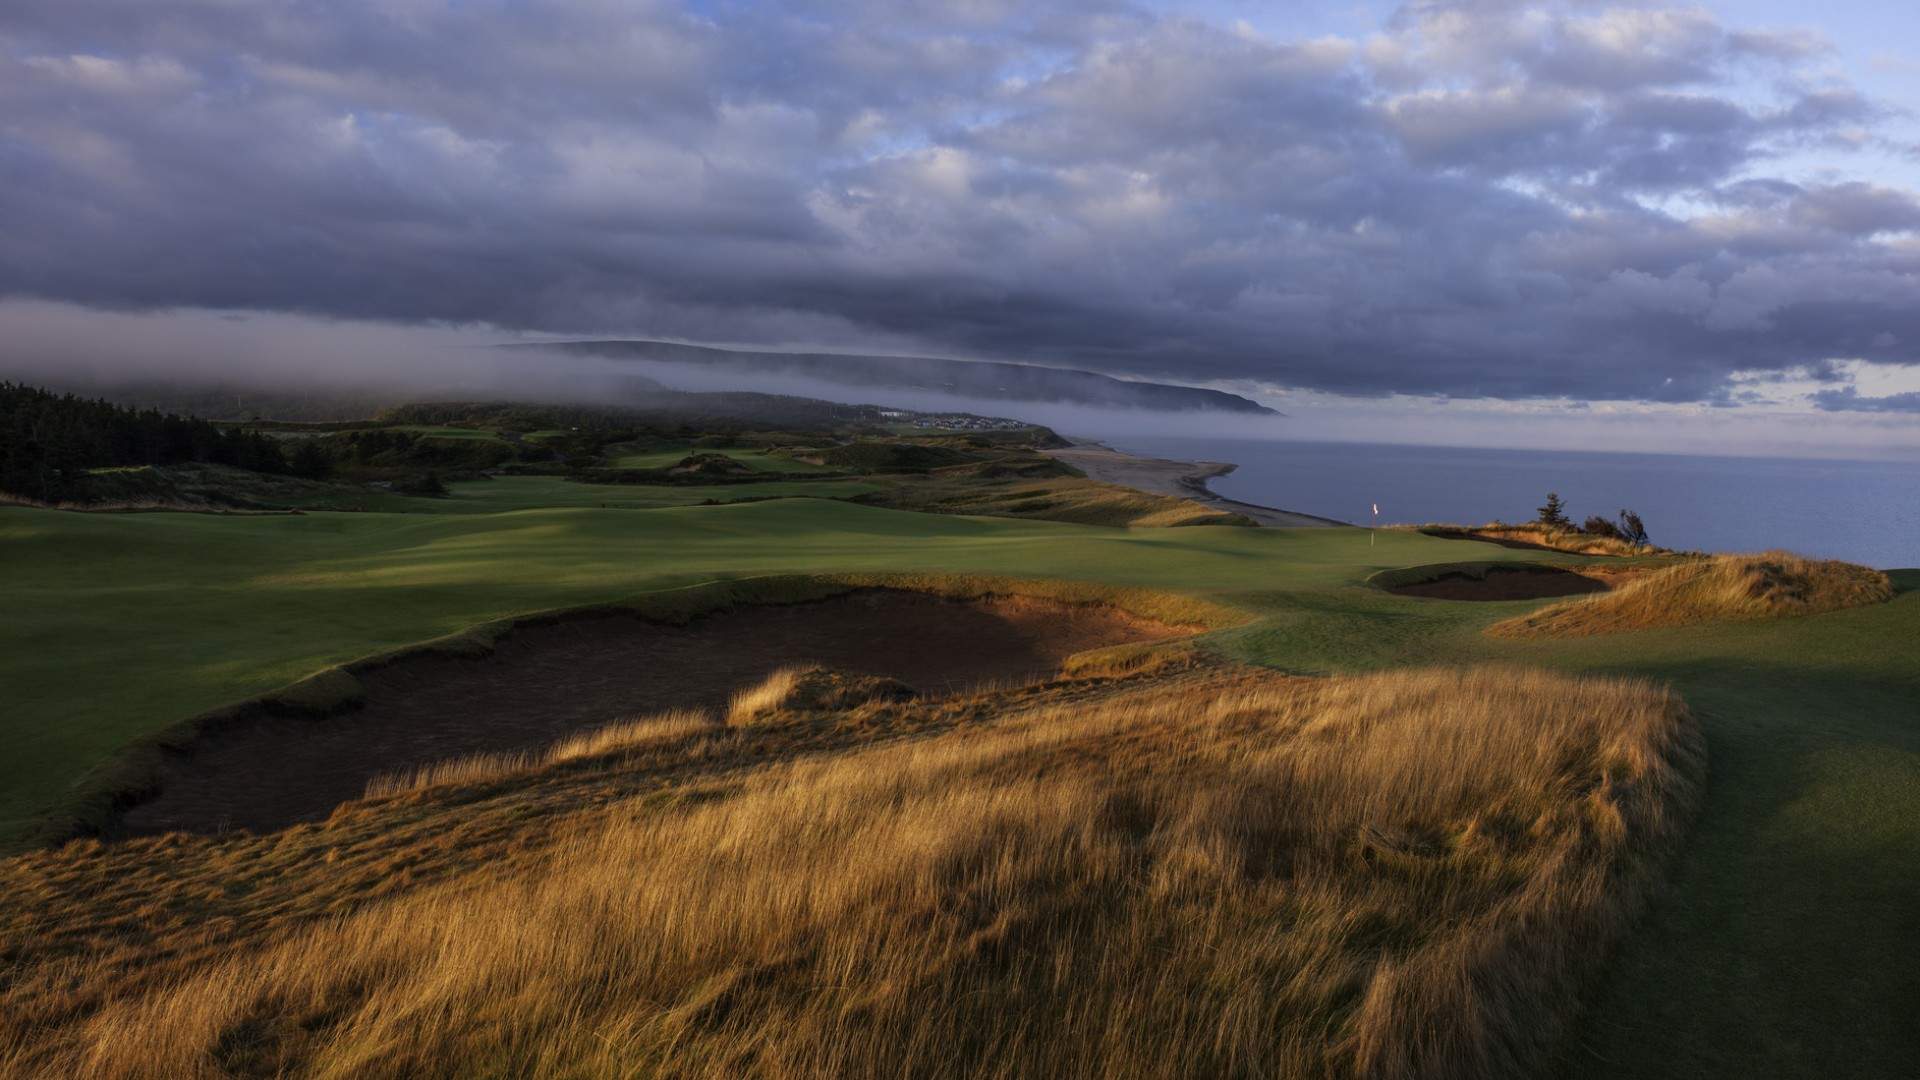 Cabot Cliffs golf course, Inverness, Canada